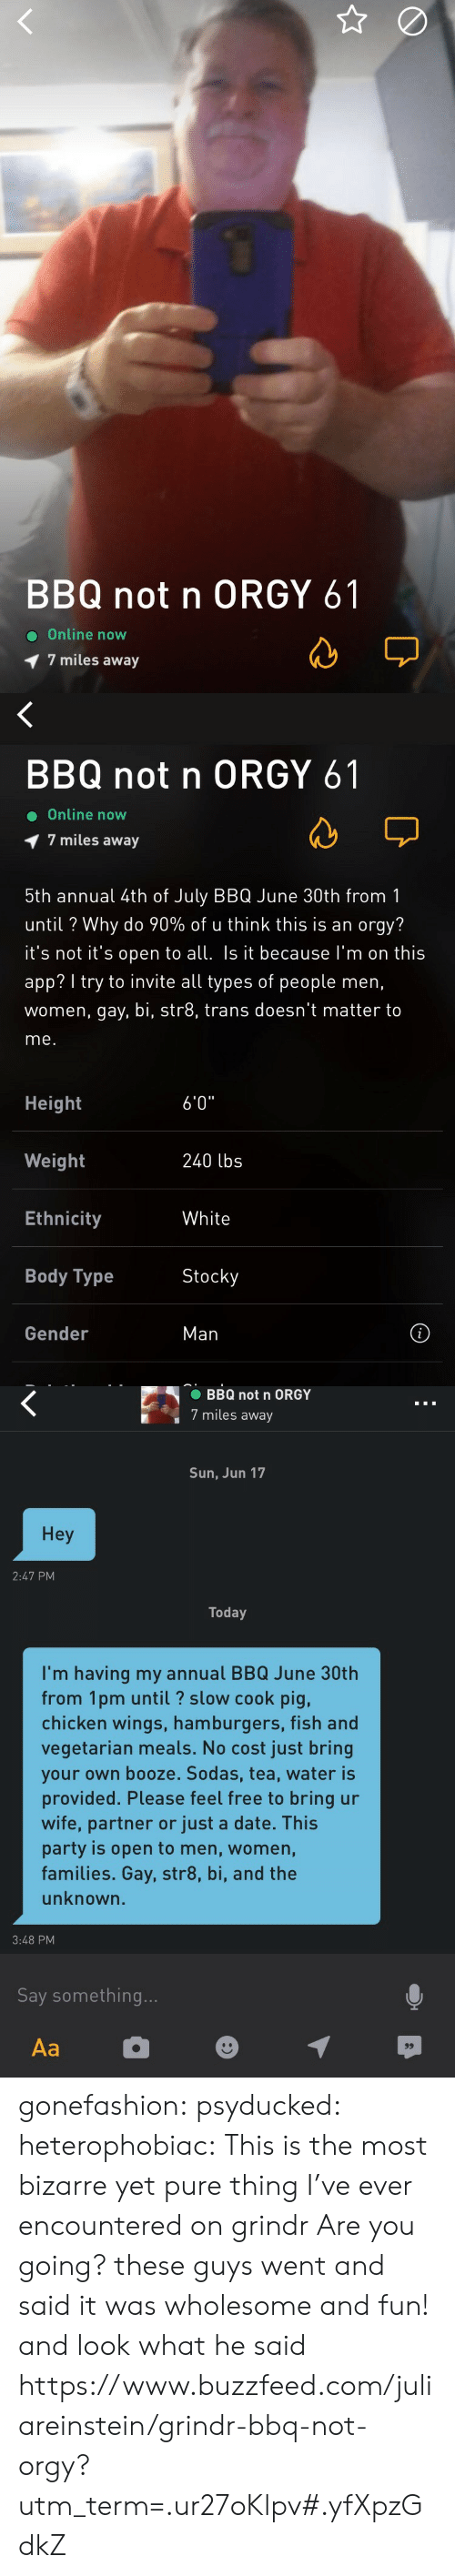 """Body Type: BBQ not n ORGY 61  Online now  7 miles away   BBQ not n ORGY 61  Online now  1 7 miles away  5th annual 4th of July BBQ June 30th from1  until ? Why do 90% of u think this is an orgy?  t's not t's open to all Is it because I'm on this  app? I try to invite all types of people men,  women, gay, bi, str8, trans doesn't matter to  me.  Height  Weight  Ethnicity  Body Type  6'0""""  240 lbs  White  Stocky  Gender  Man   BBQ not n ORGY  7 miles away  Sun, Jun 17  Hey  2:47 PM  Today  I'm having my annual BBQ June 30th  from 1pm until? slow cook pig,  chicken wings, hamburgers, fish and  vegetarian meals. No cost just bring  your own booze. Sodas, tea, water is  provided. Please feel free to bring ur  wife, partner or just a date. This  party is open to men, women,  families. Gay, str8, bi, and the  unknown.  3:48 PM  Say something gonefashion:  psyducked:  heterophobiac: This is the most bizarre yet pure thing I've ever encountered on grindr  Are you going?  these guys went and said it was wholesome and fun! and look what he said https://www.buzzfeed.com/juliareinstein/grindr-bbq-not-orgy?utm_term=.ur27oKlpv#.yfXpzGdkZ"""